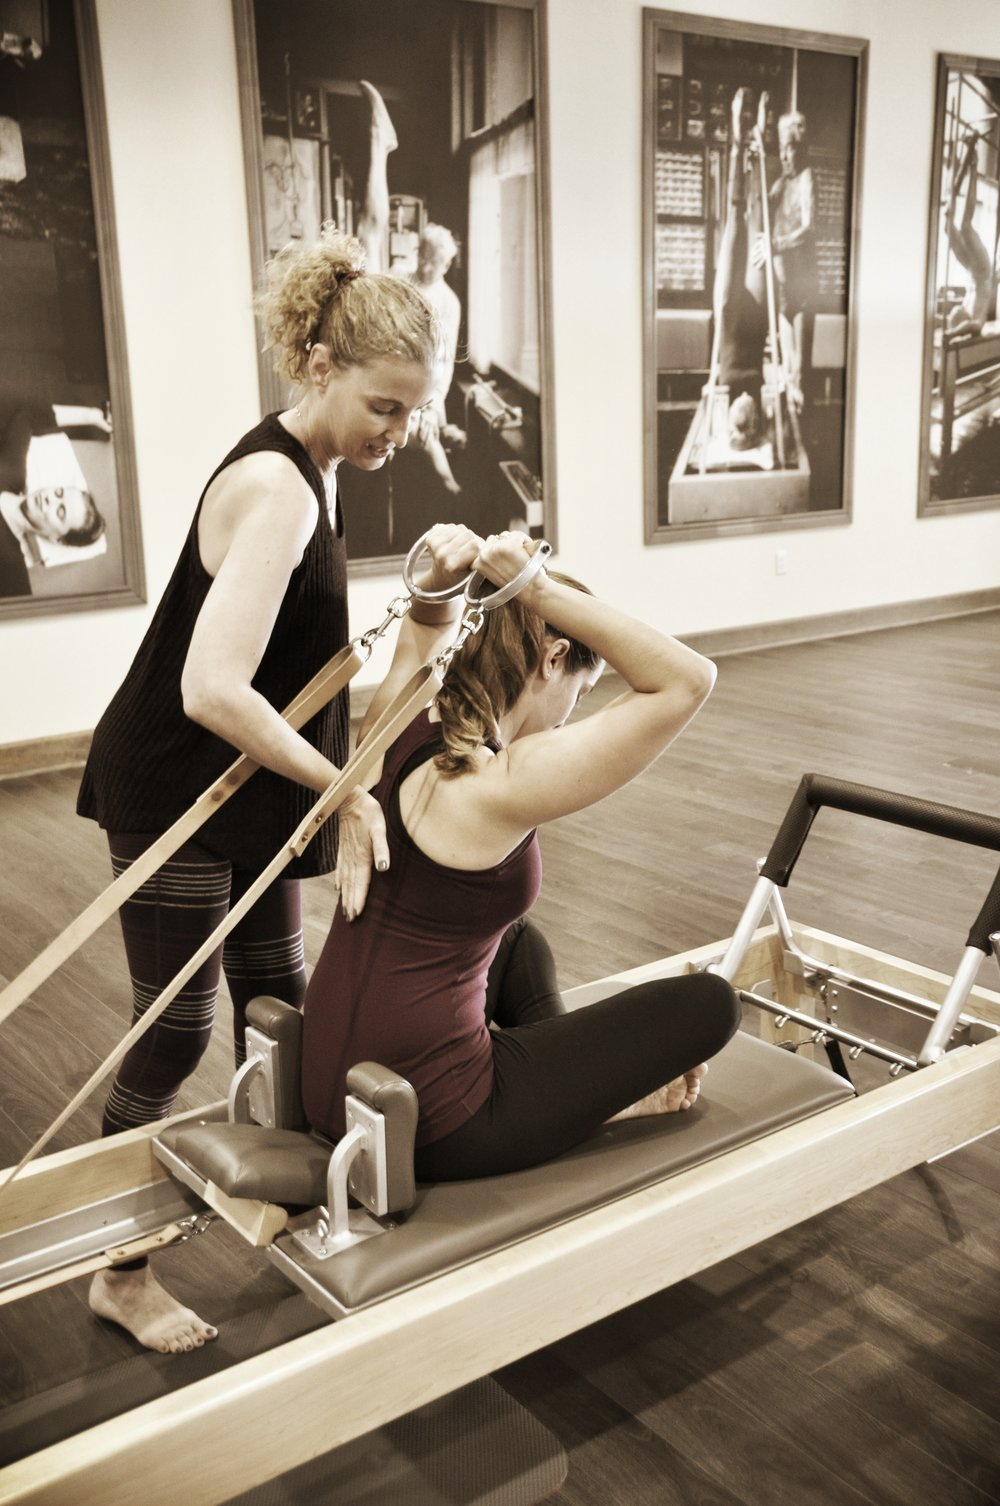 Hilary will come to your studio with a workshop designed for your teachers.